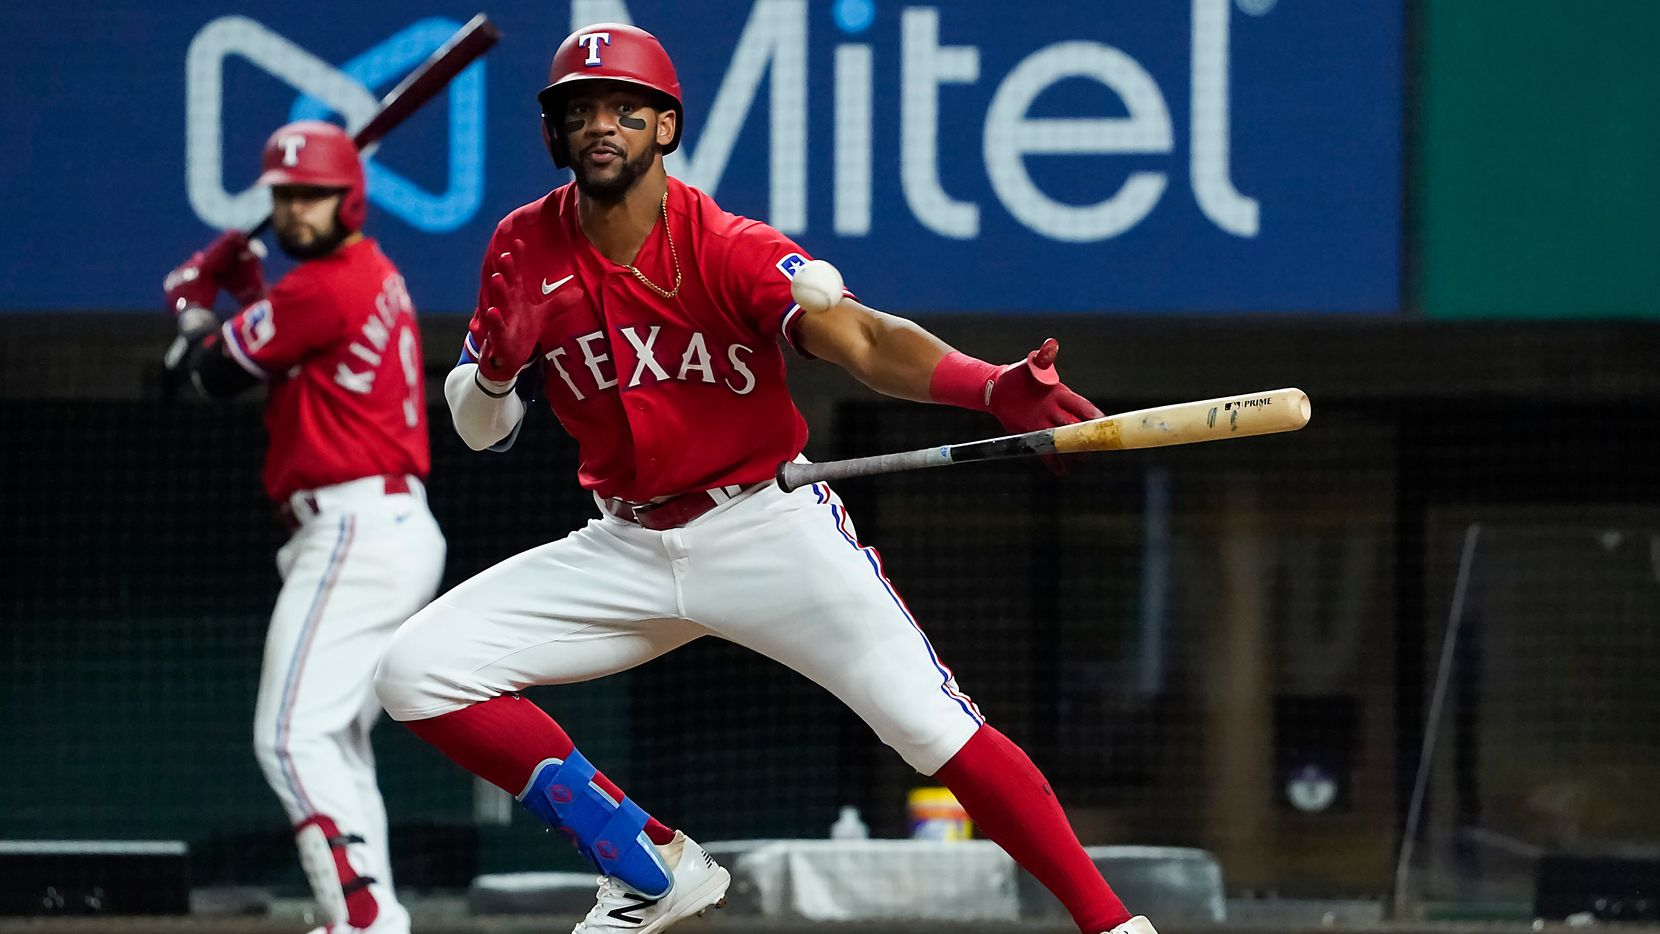 Texas Rangers center fielder Leody Taveras bunts the ball foul during the eighth inning against the Texas Rangers at Globe Life Field on Friday, April 16, 2021.